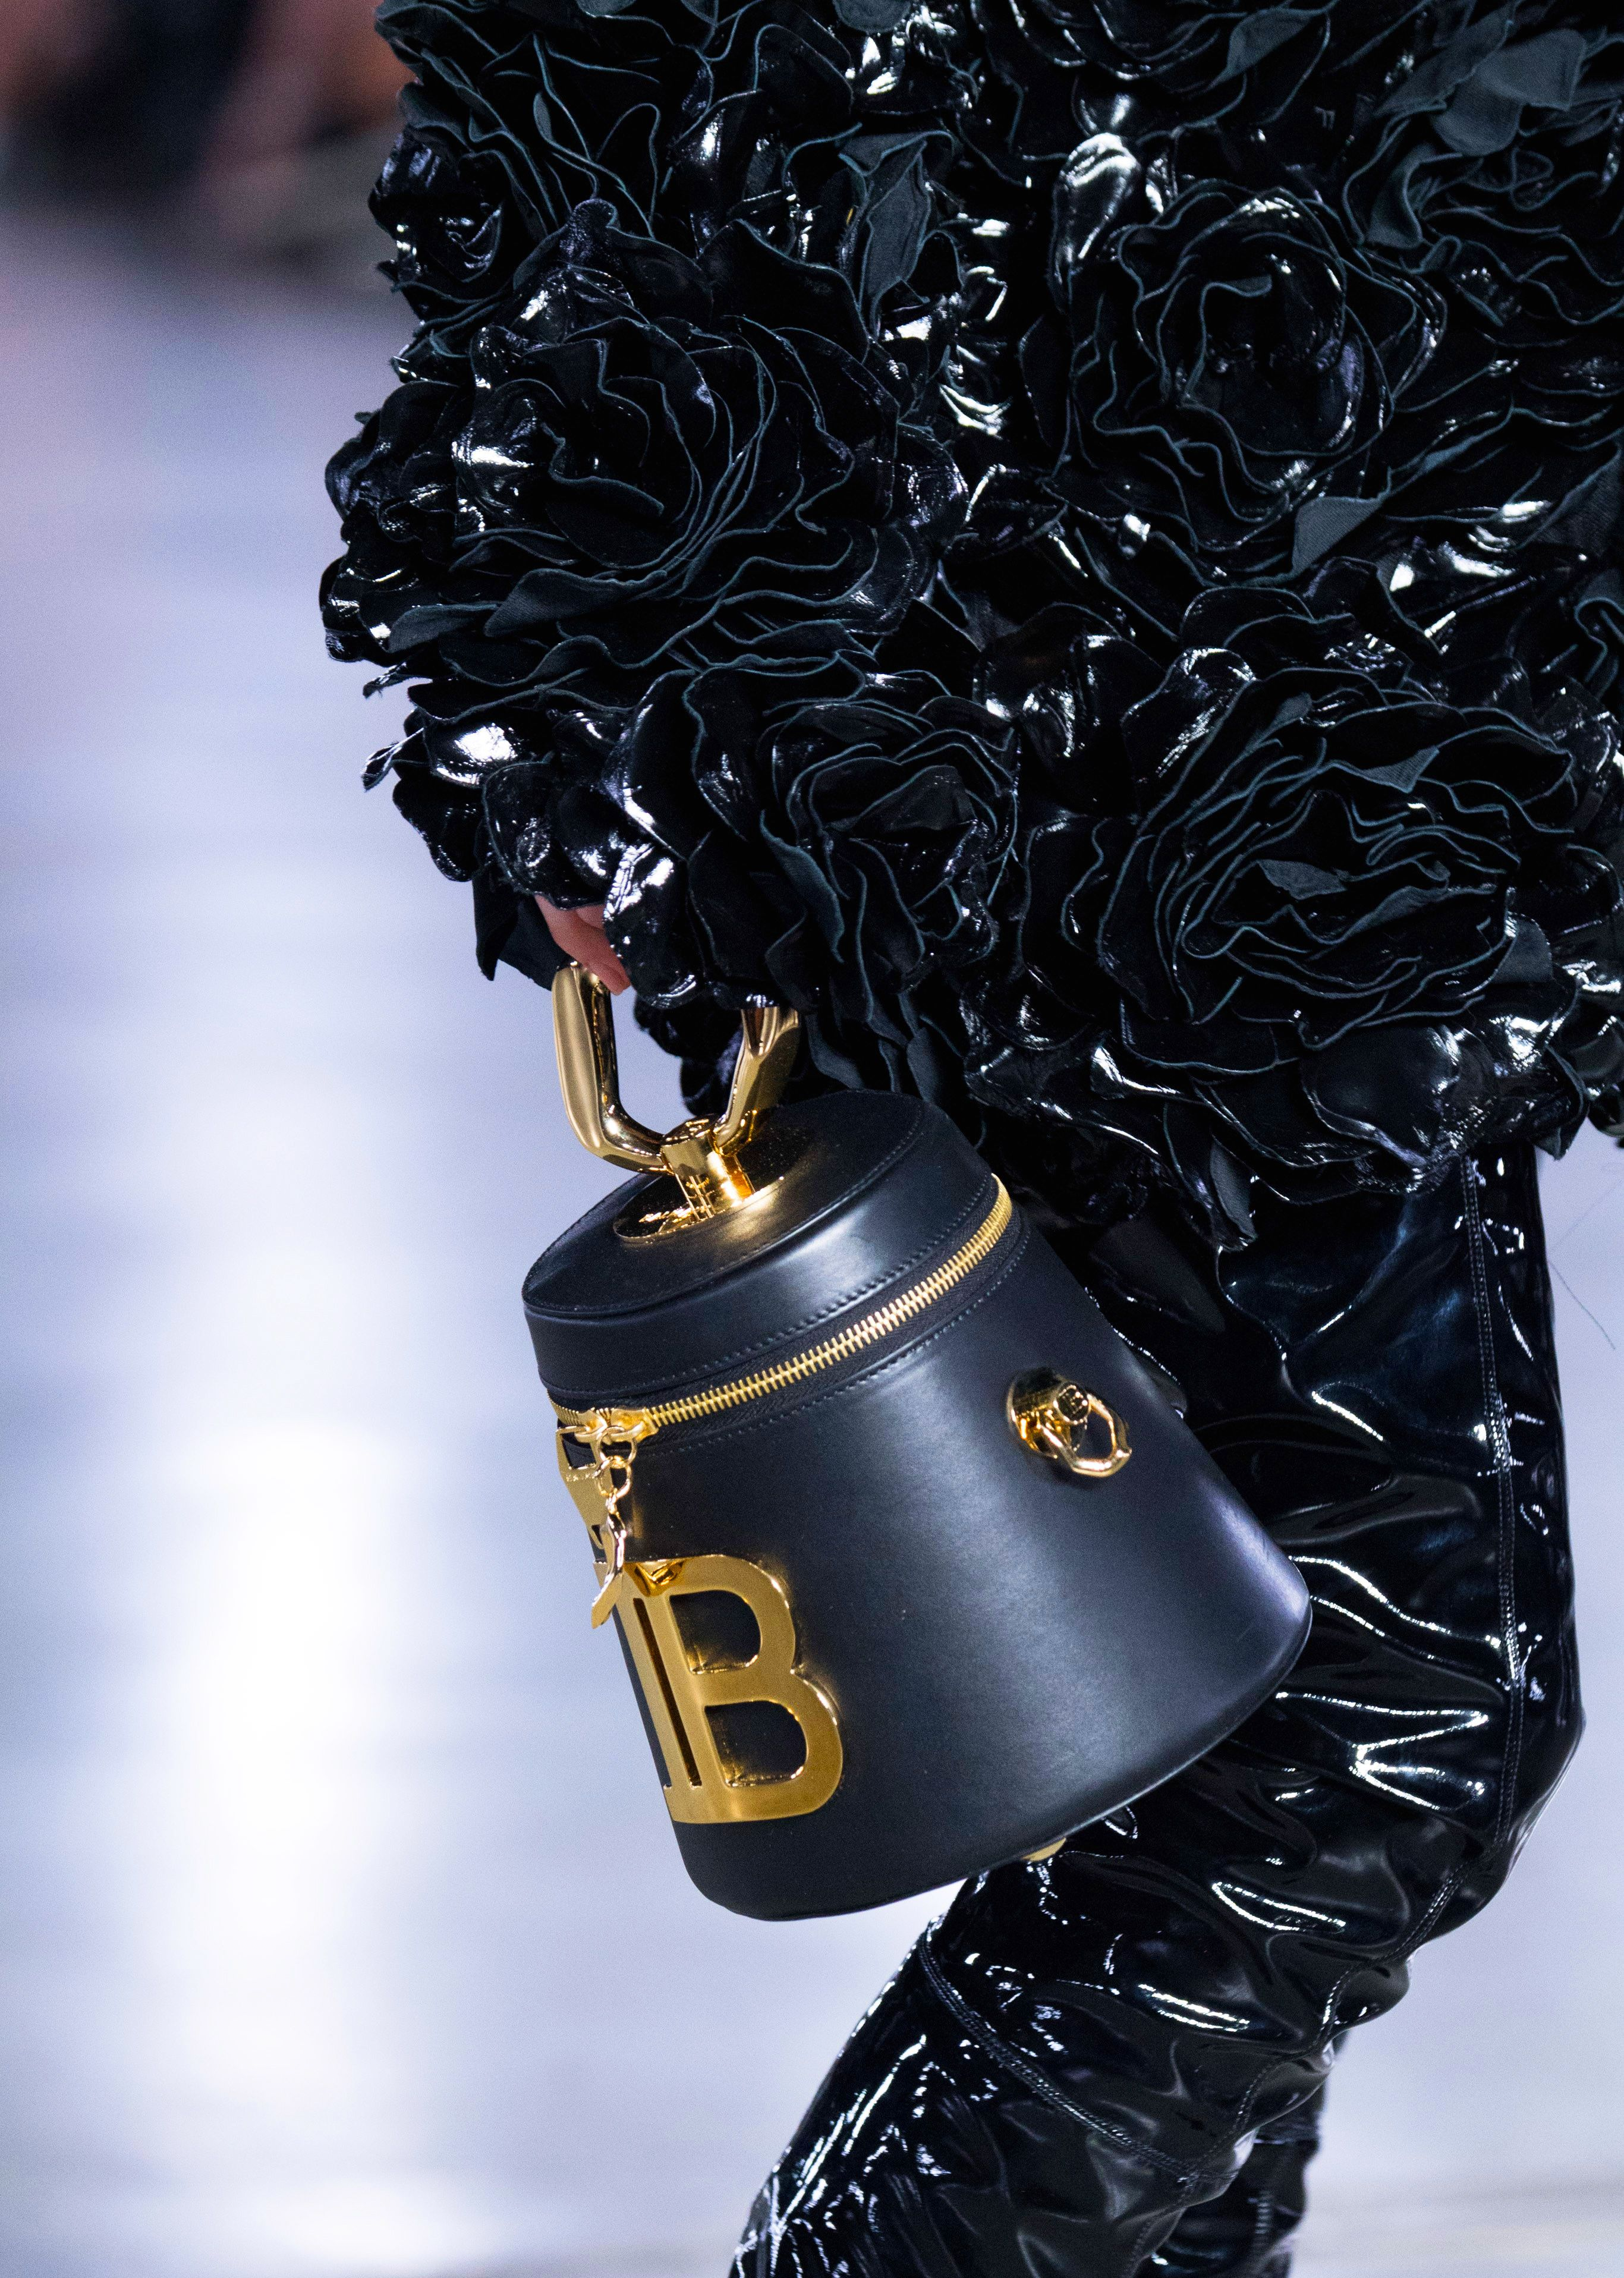 Balmain black Romeo bag from the Fall 2019 Runway Collection